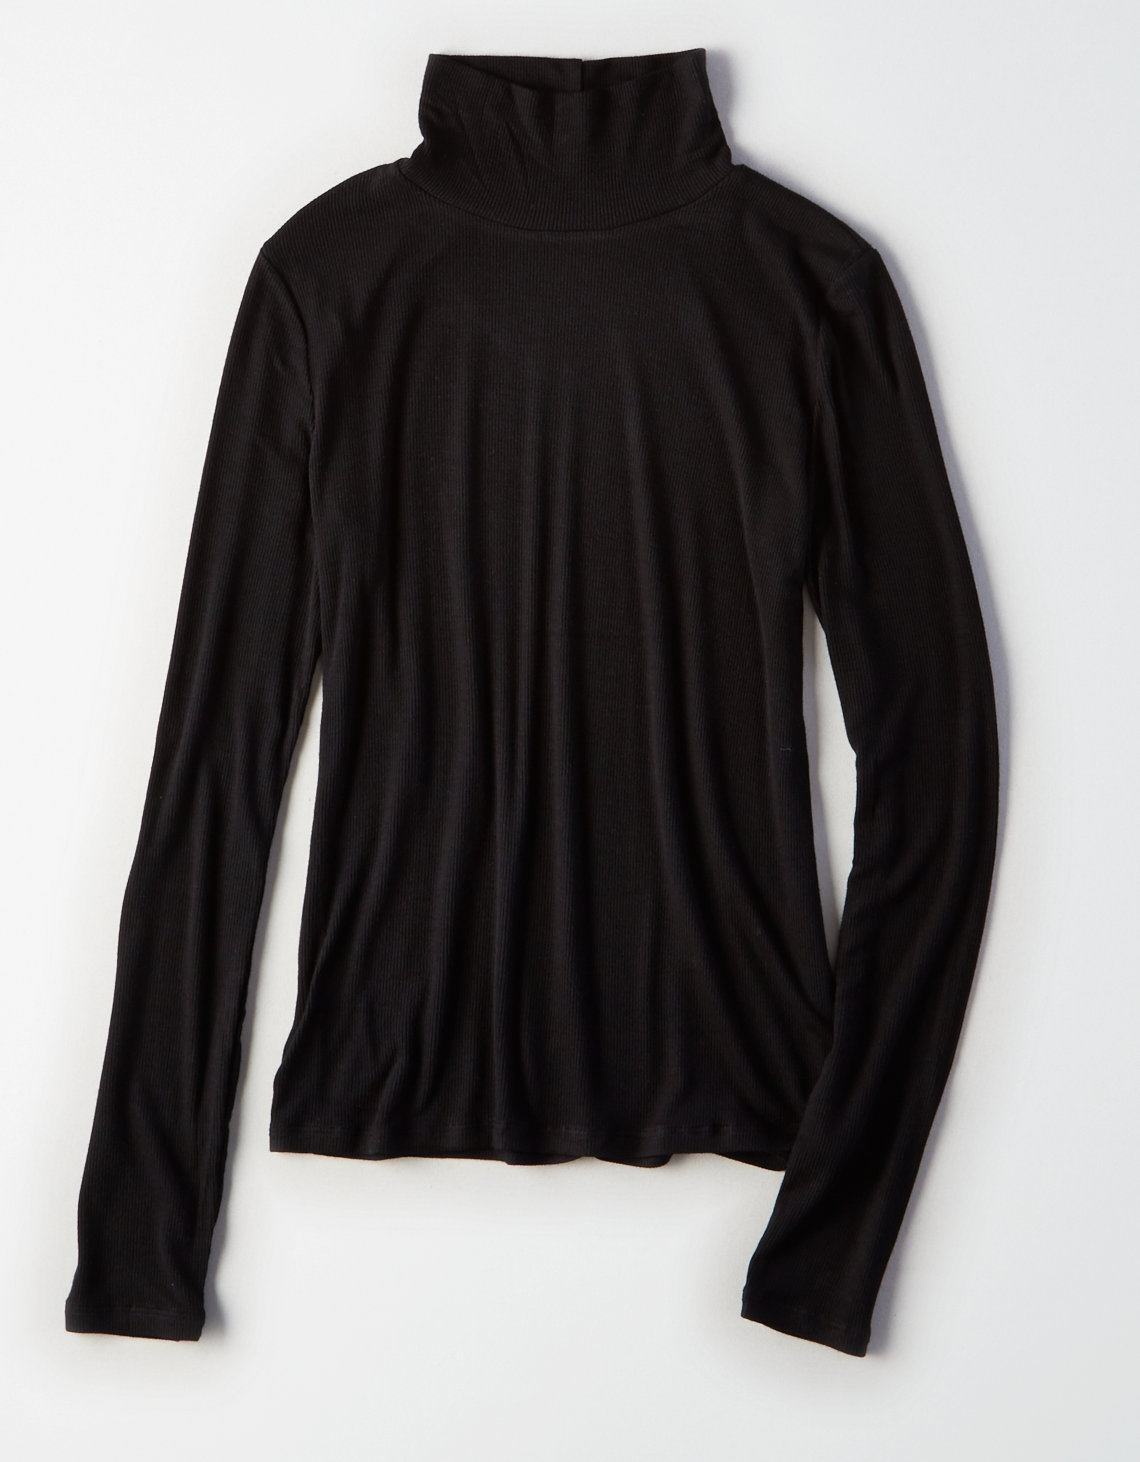 AE Soft & Sexy Ribbed Turtleneck